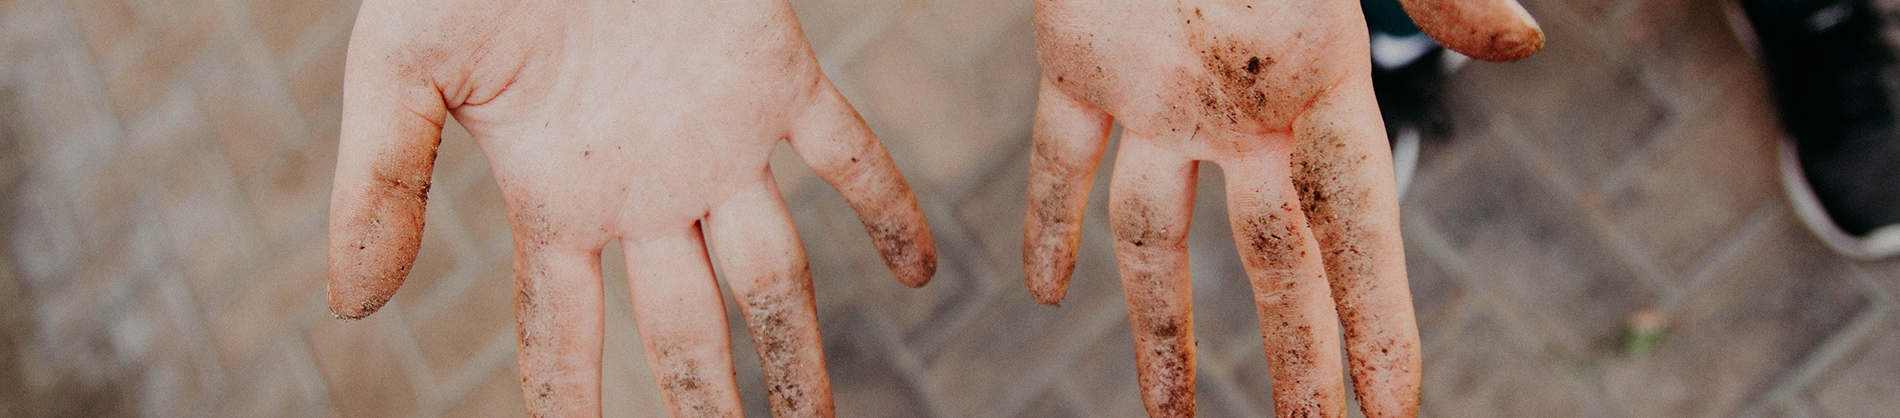 A persons hands with dirt on the fingers